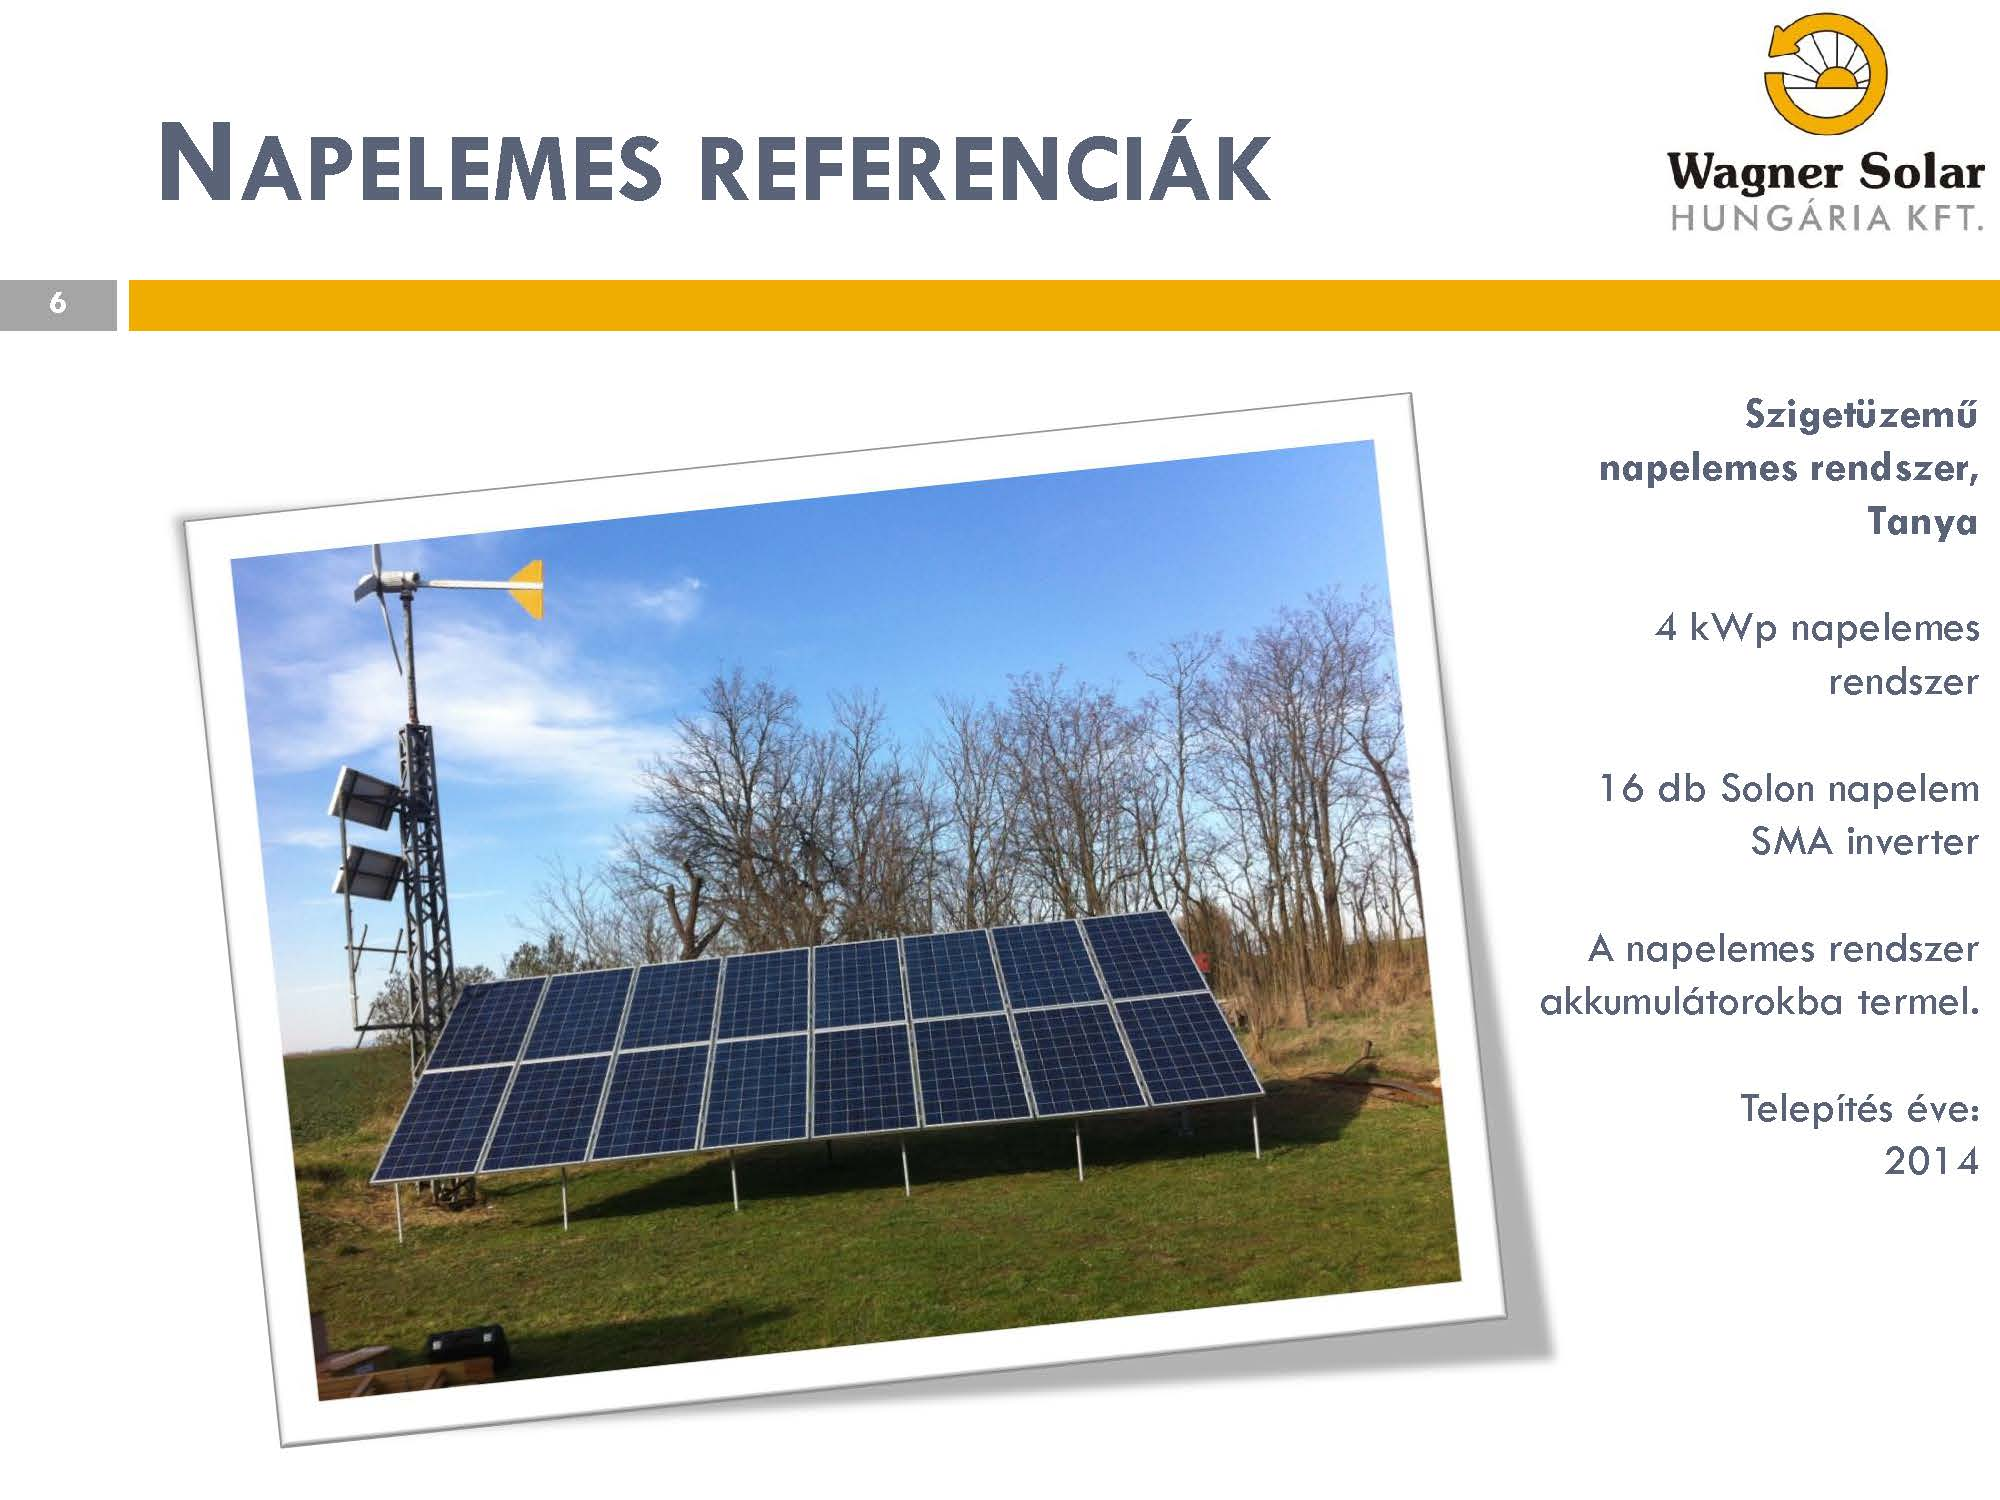 wagnersolar_referencia_2016_page_06.jpg